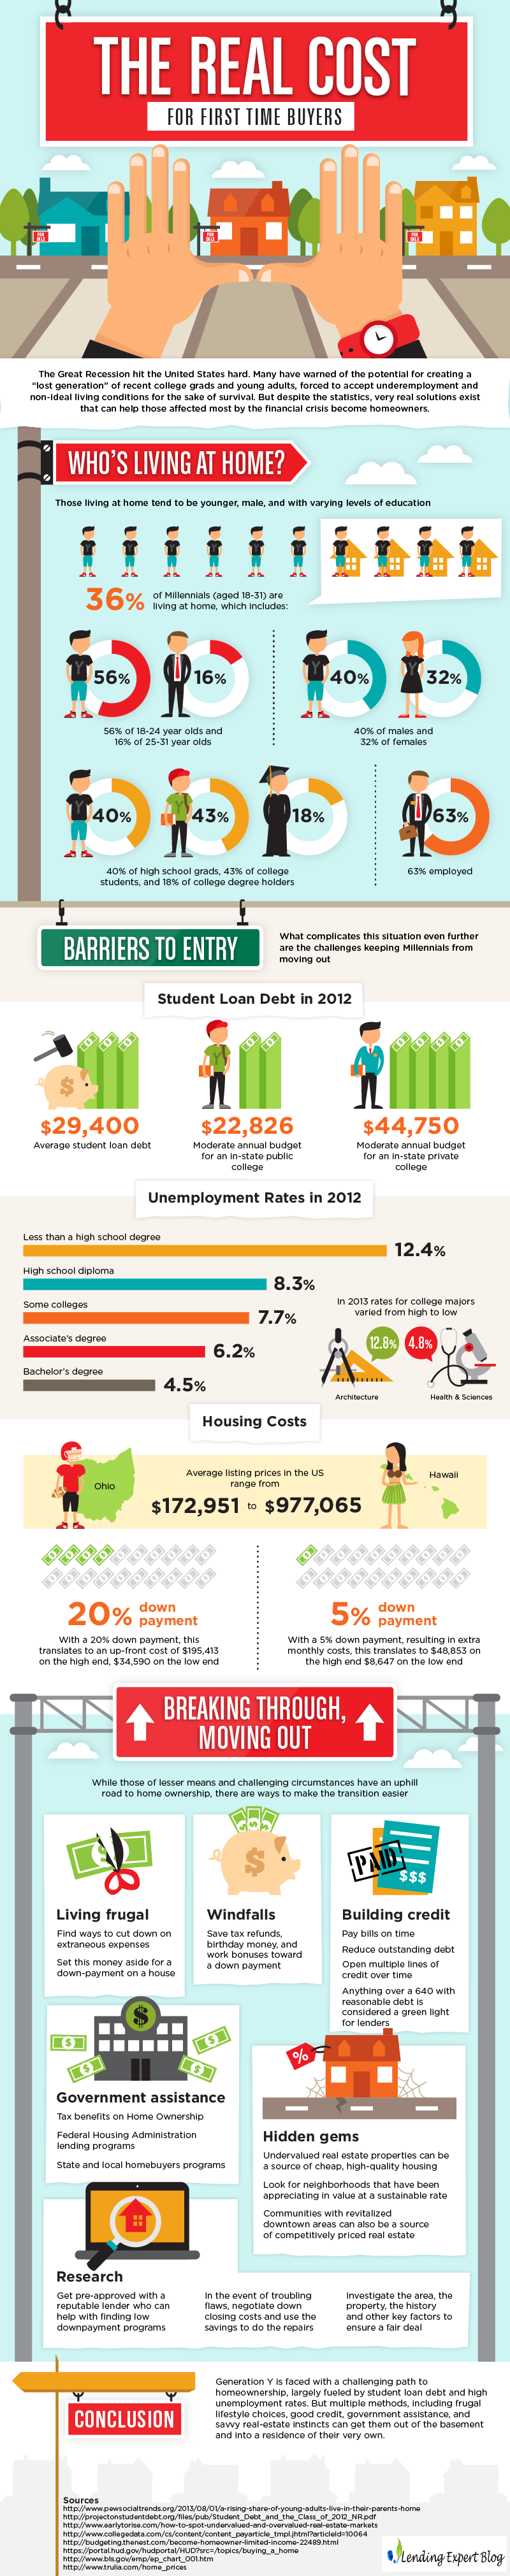 http://lendingexpertblog.com/real-cost-for-first-time-buyers-infographic/